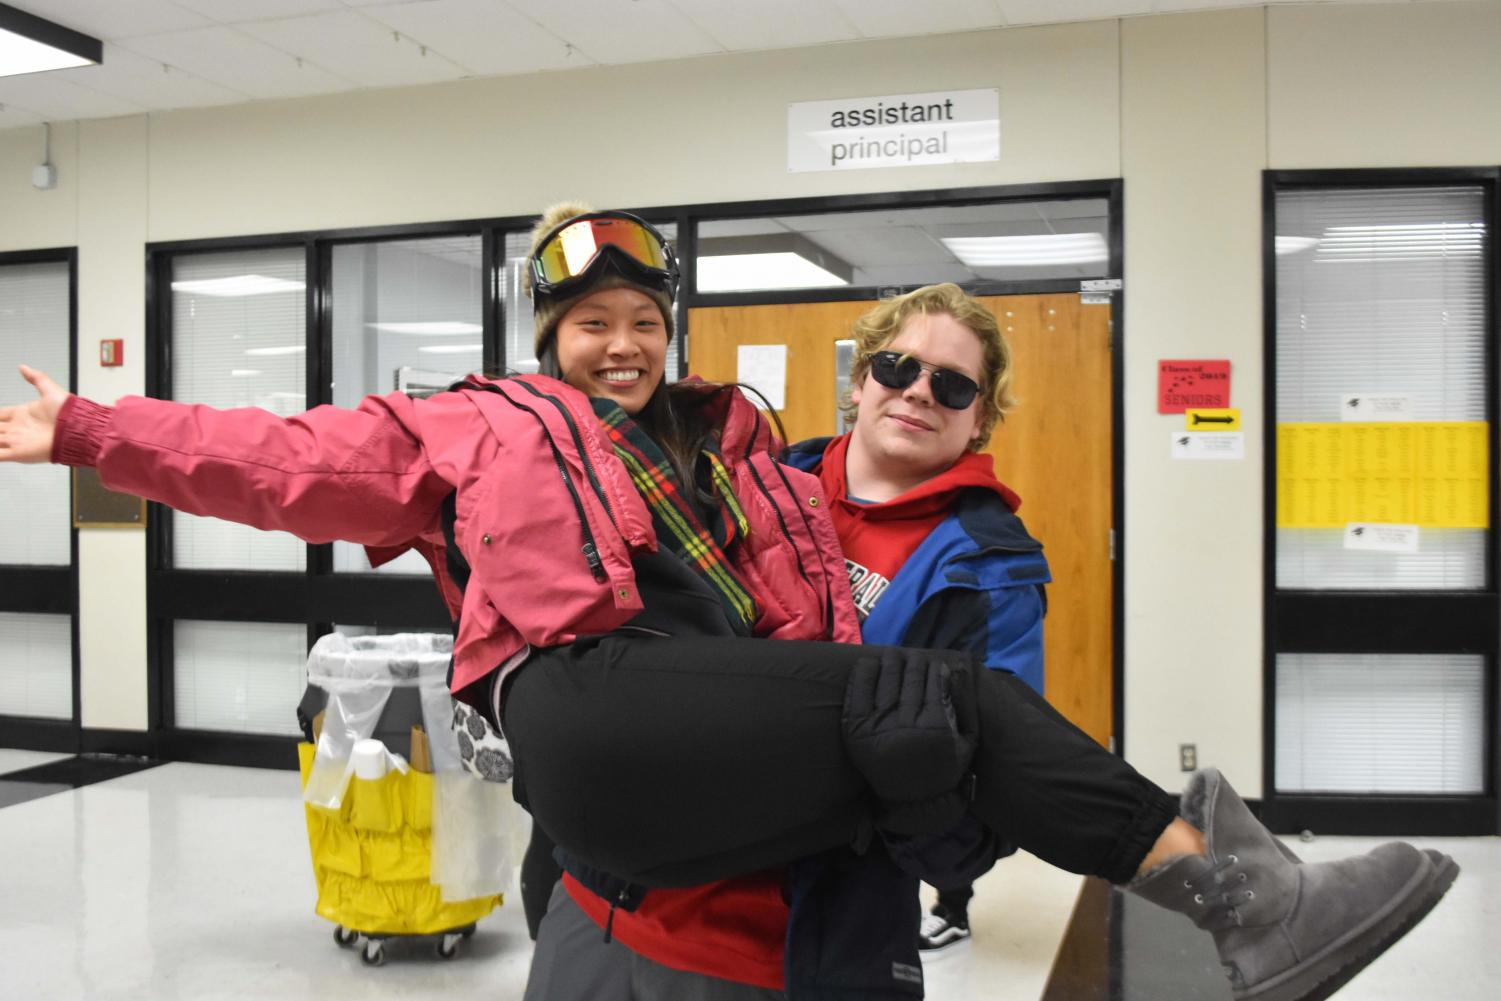 Seniors Tiffany Huang and Stephen Unk dressed up in their ski wear showing school spirit during KISS week.